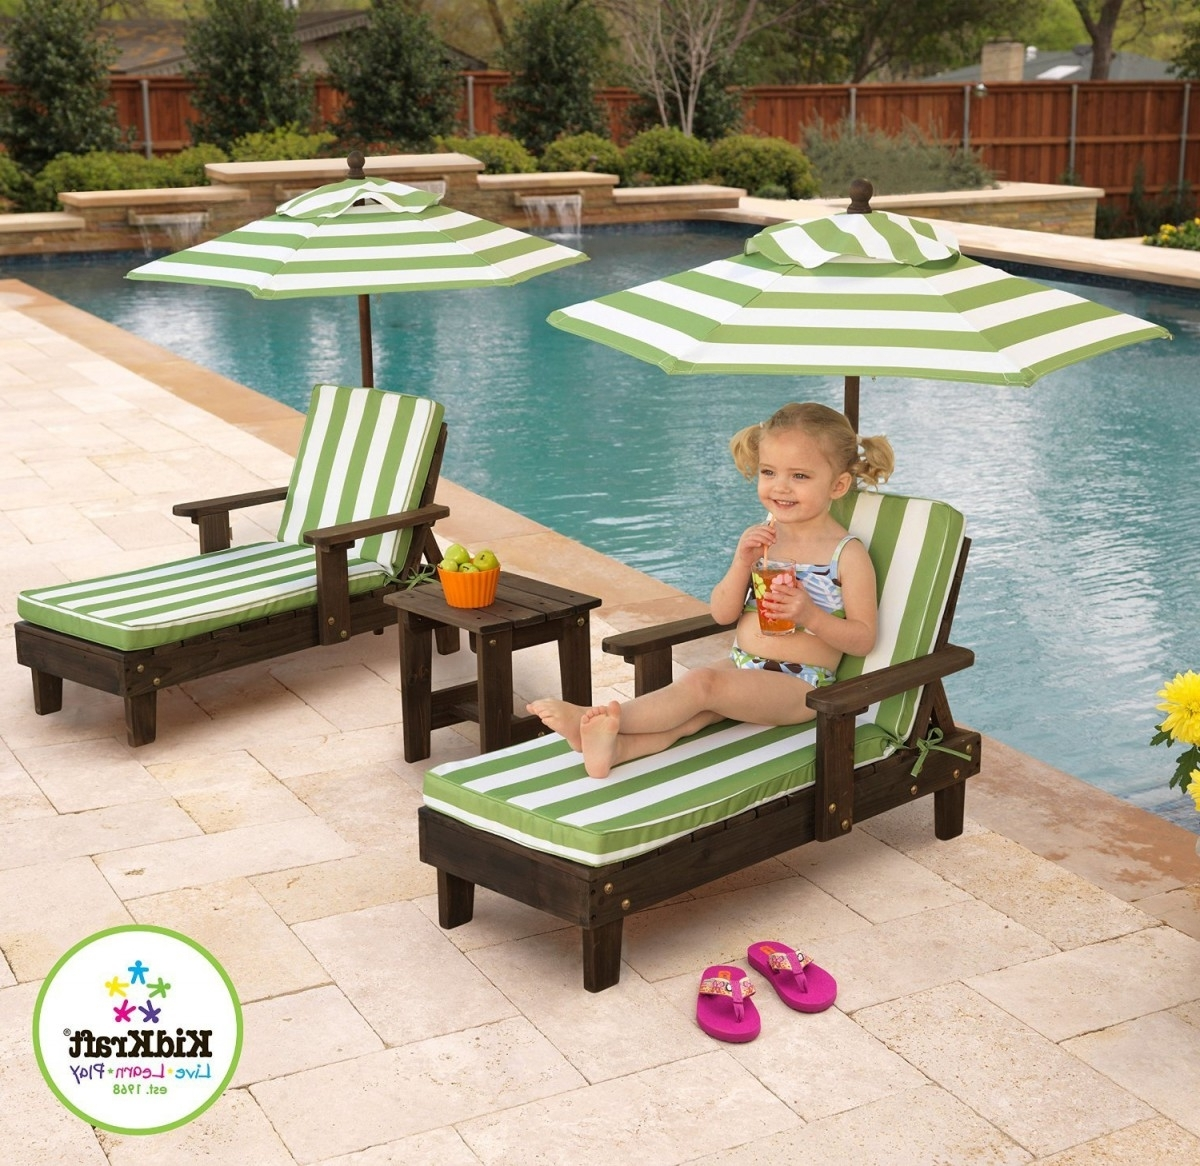 Kidkraft Outdoor Chaise Lounge Chairs And Umbrella Set Throughout 2017 Kidkraft Chaise Lounges (View 9 of 15)